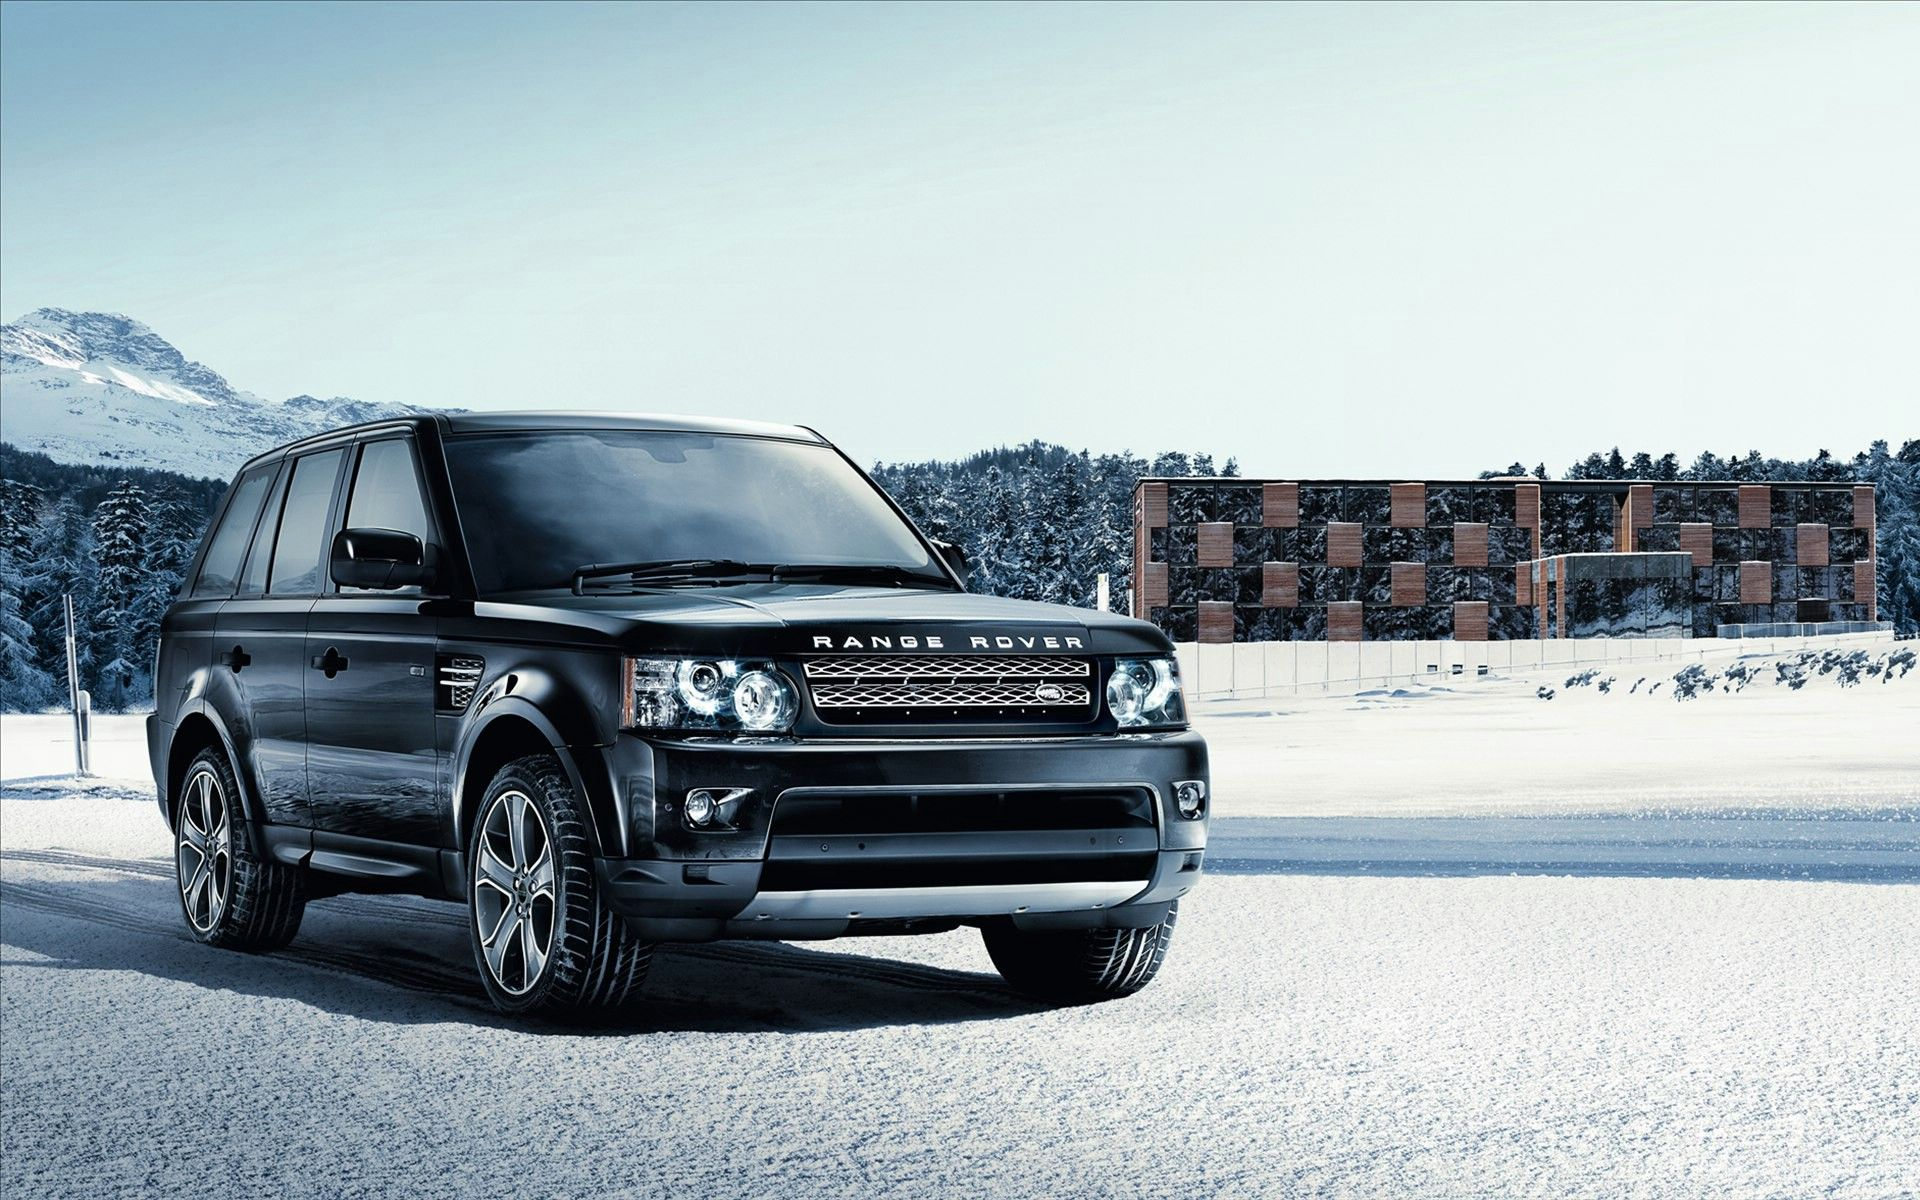 Range Rover Sport Iphone Wallpaper: Range Rover Wallpapers HD Choose The Best For Your